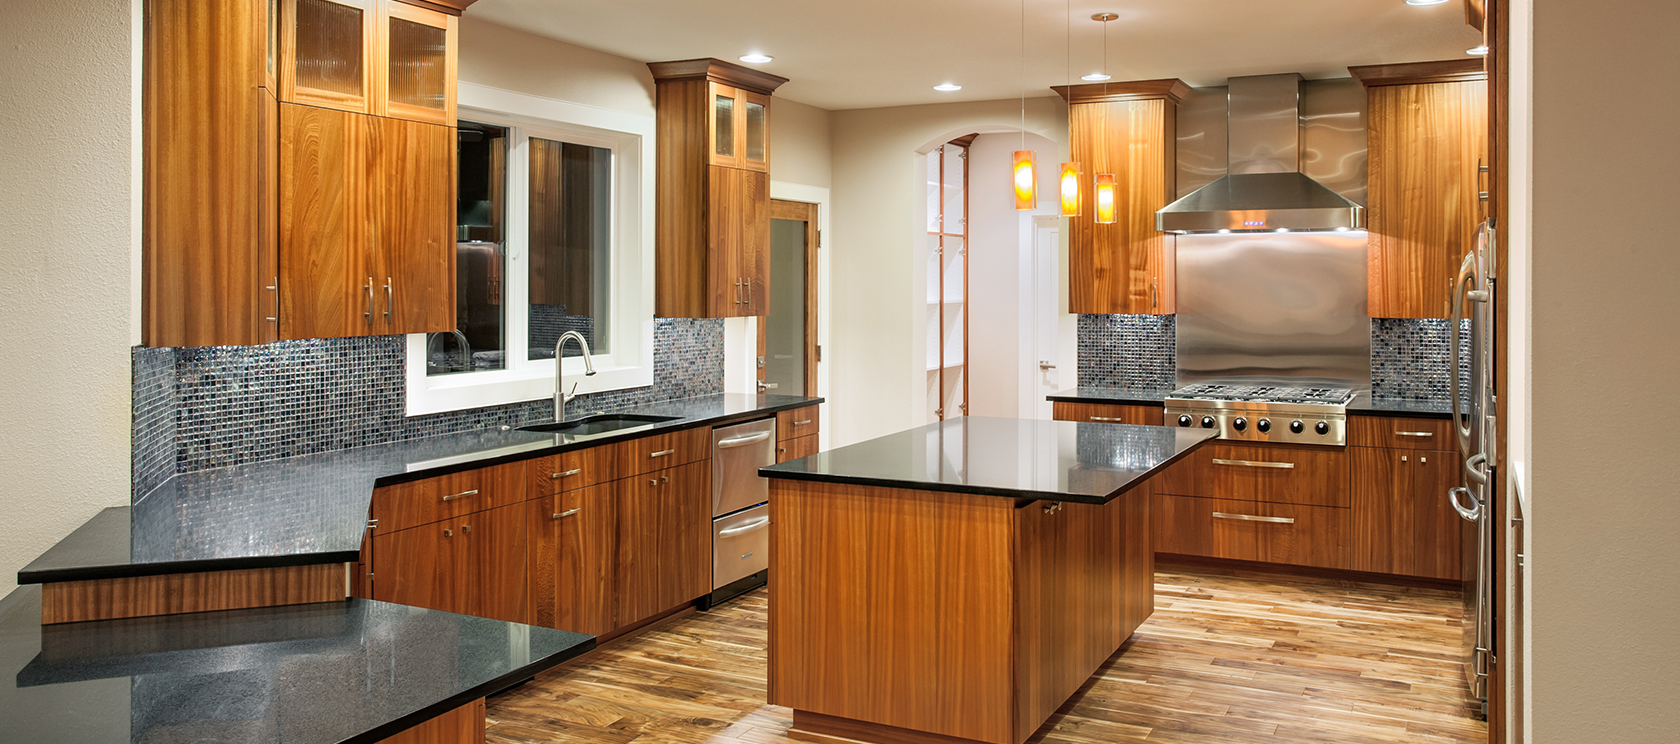 Granite quartz kitchen countertops lexmar usa - Pictures of kitchens with quartz countertops ...